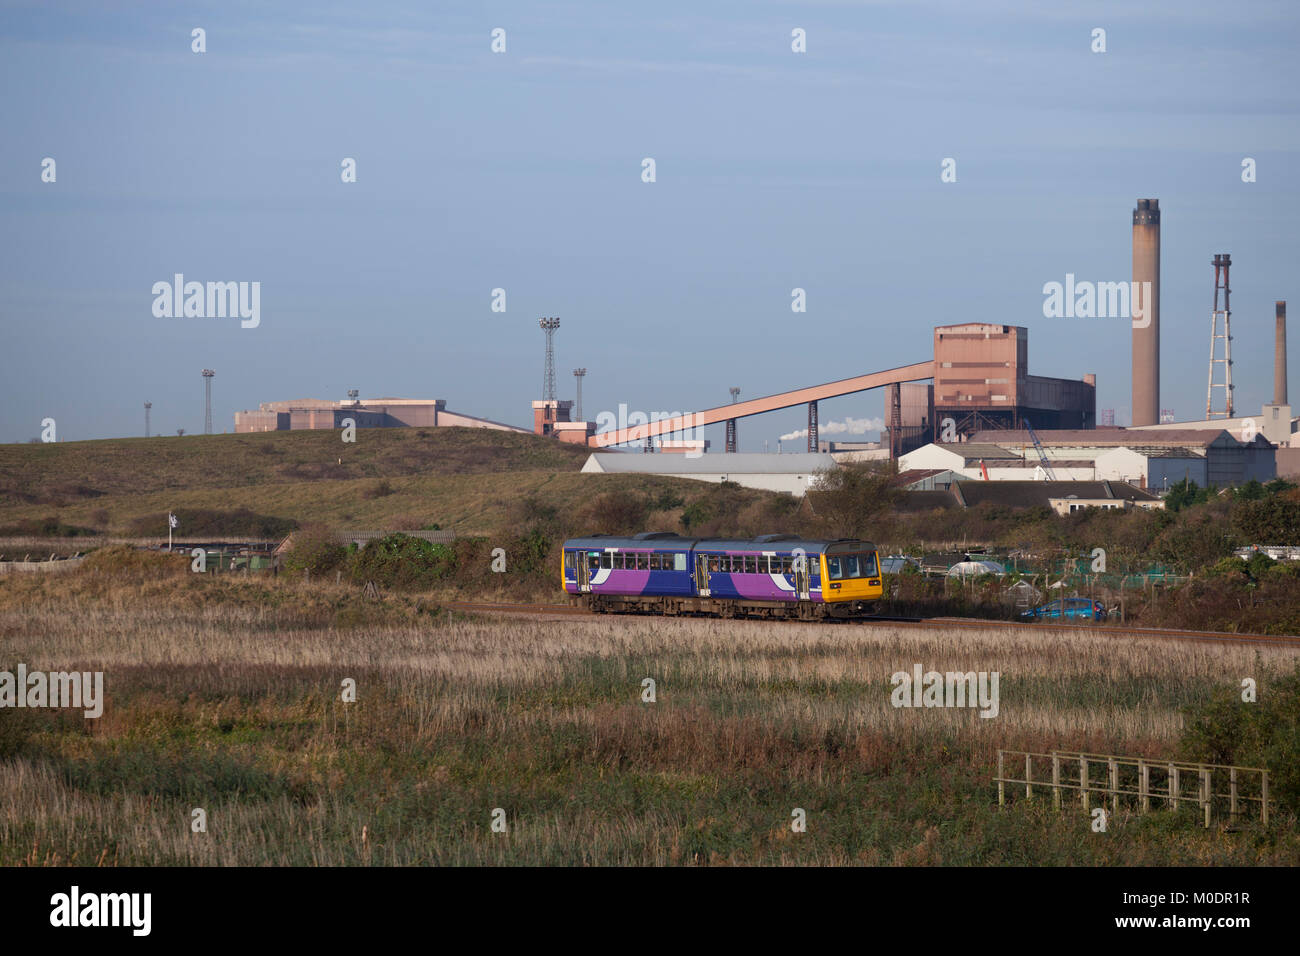 Northern rail class 142 pacer train passing Cottam Marsh, Redcar  with the abandoned steelworks behind working the - Stock Image